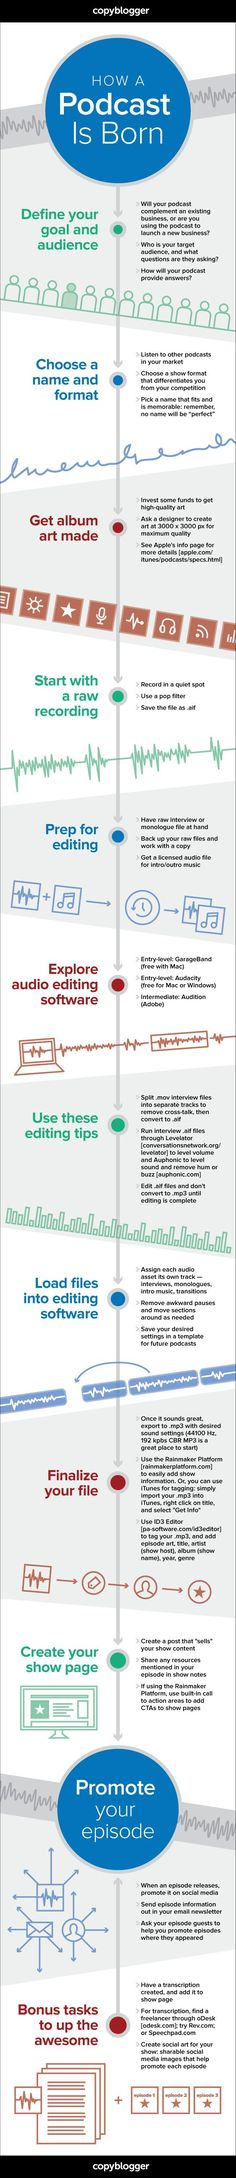 Here is a infographic of a step-by-step guide to start and produce your very own podcast!